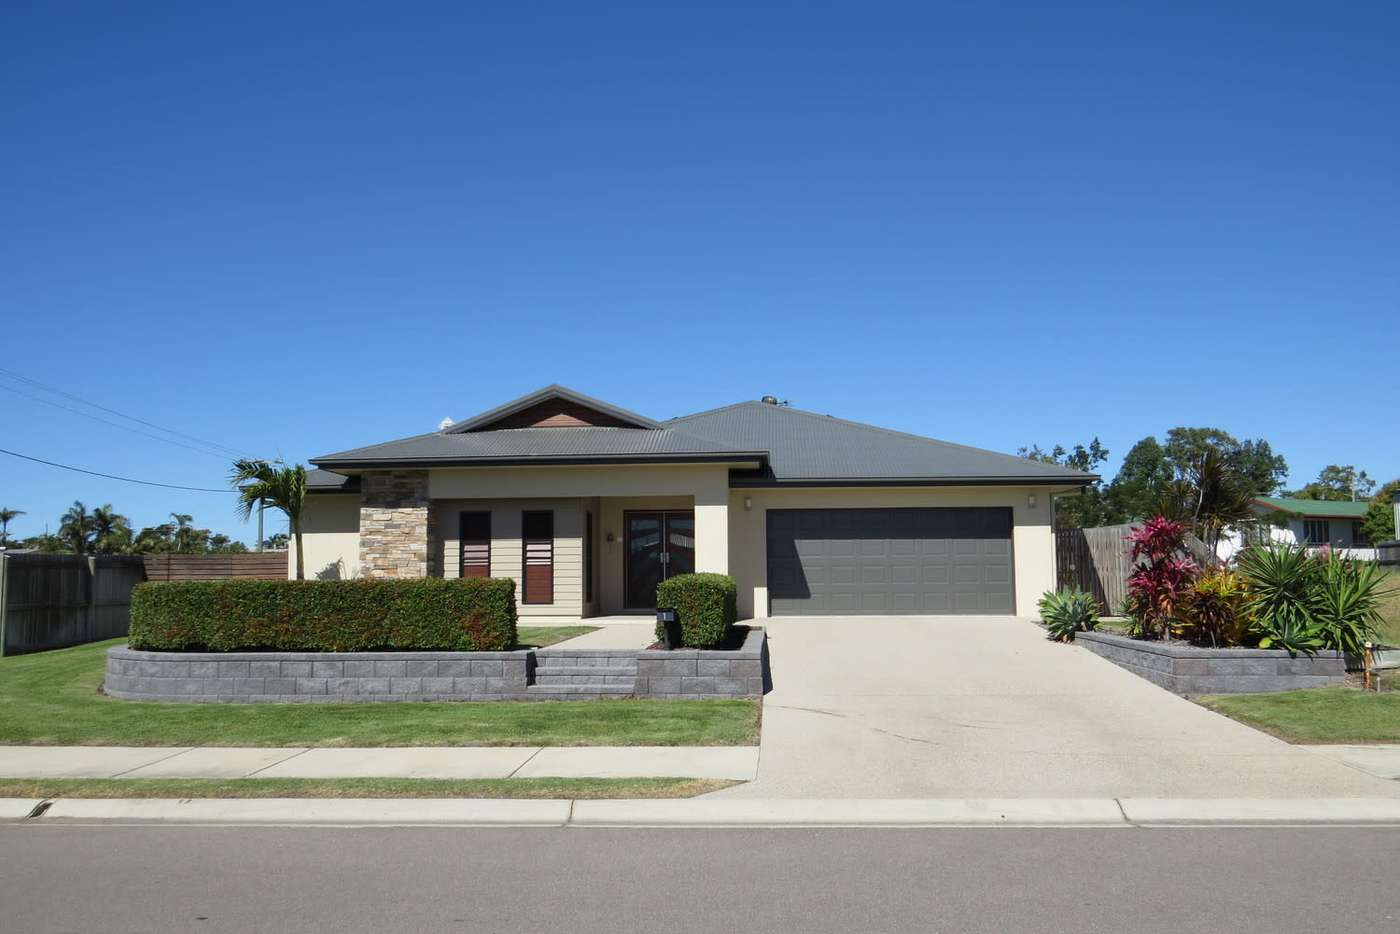 Main view of Homely house listing, 1 Harrison Court, Bowen QLD 4805